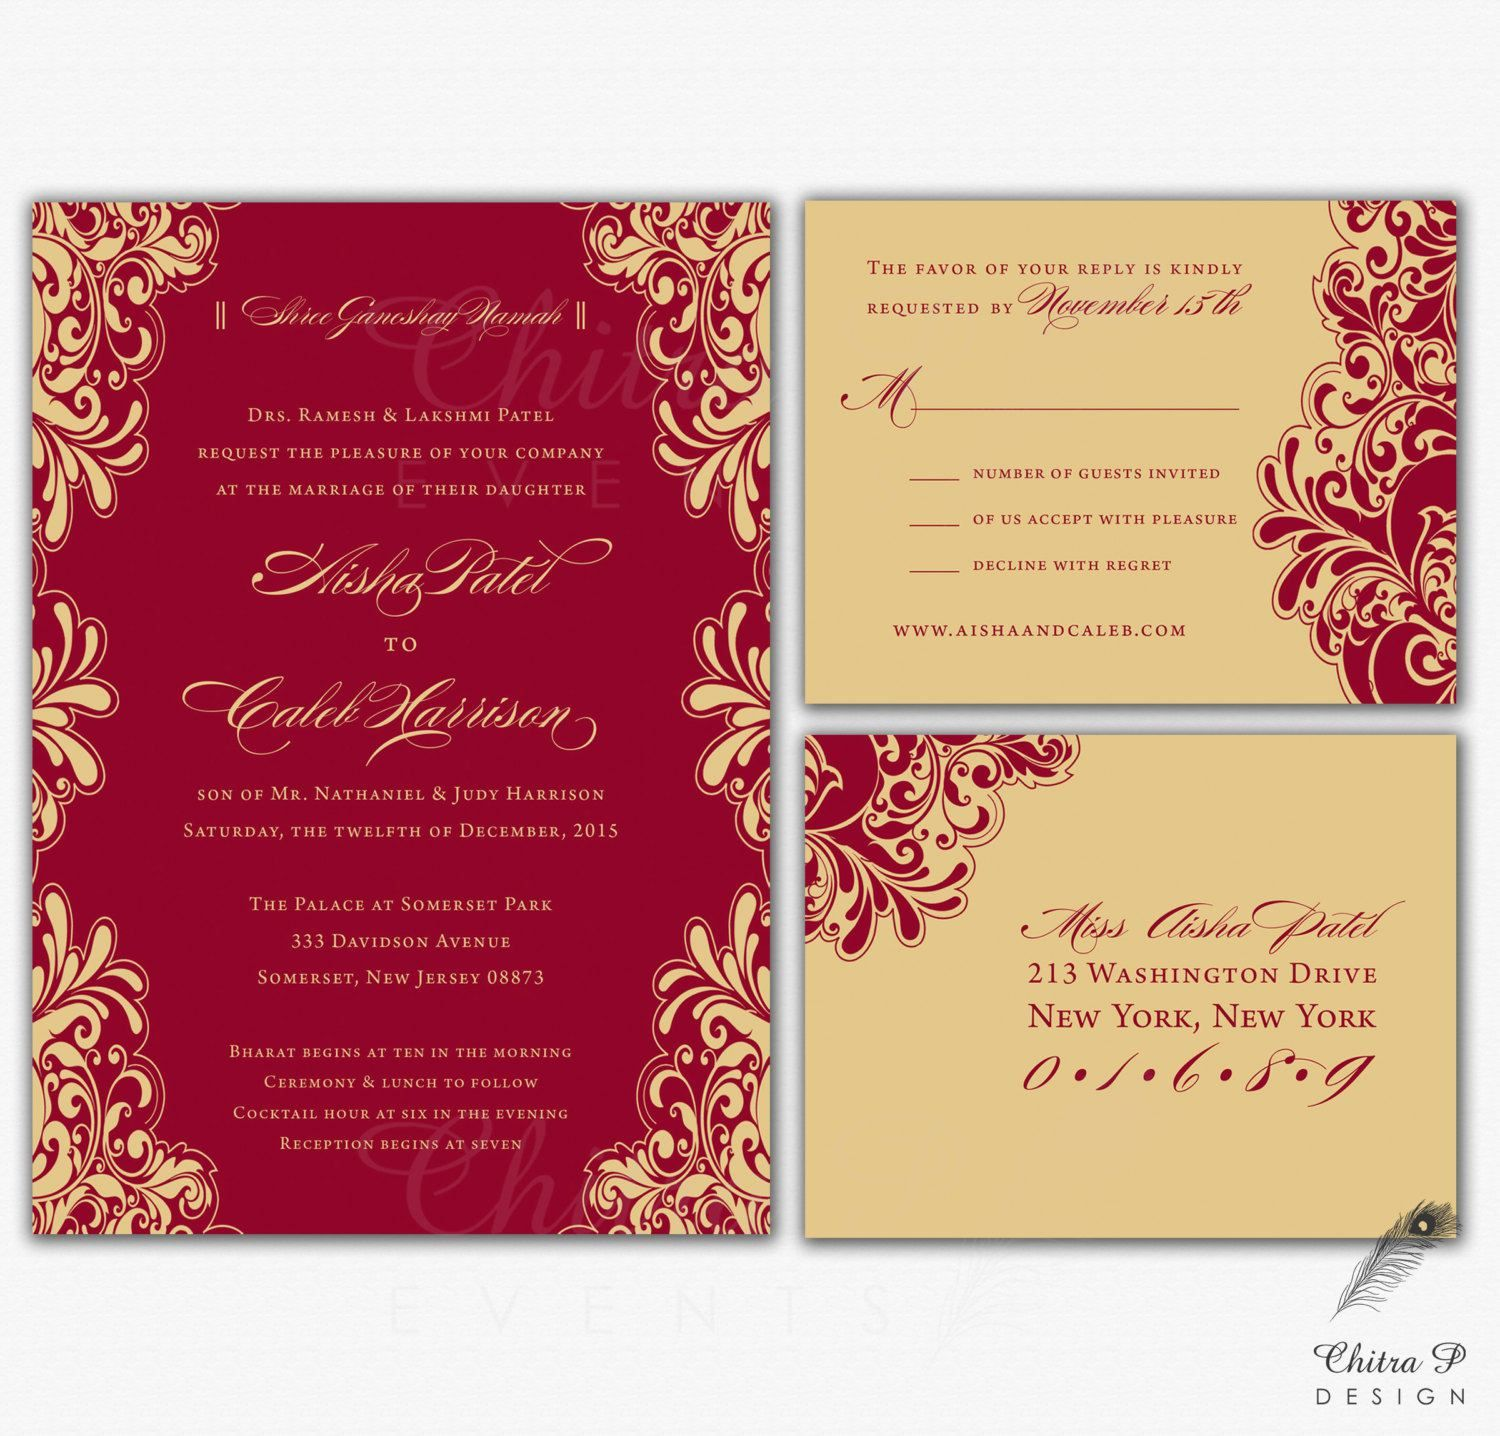 Wedding Invitations With Response Cards : Wedding Invitations With ...